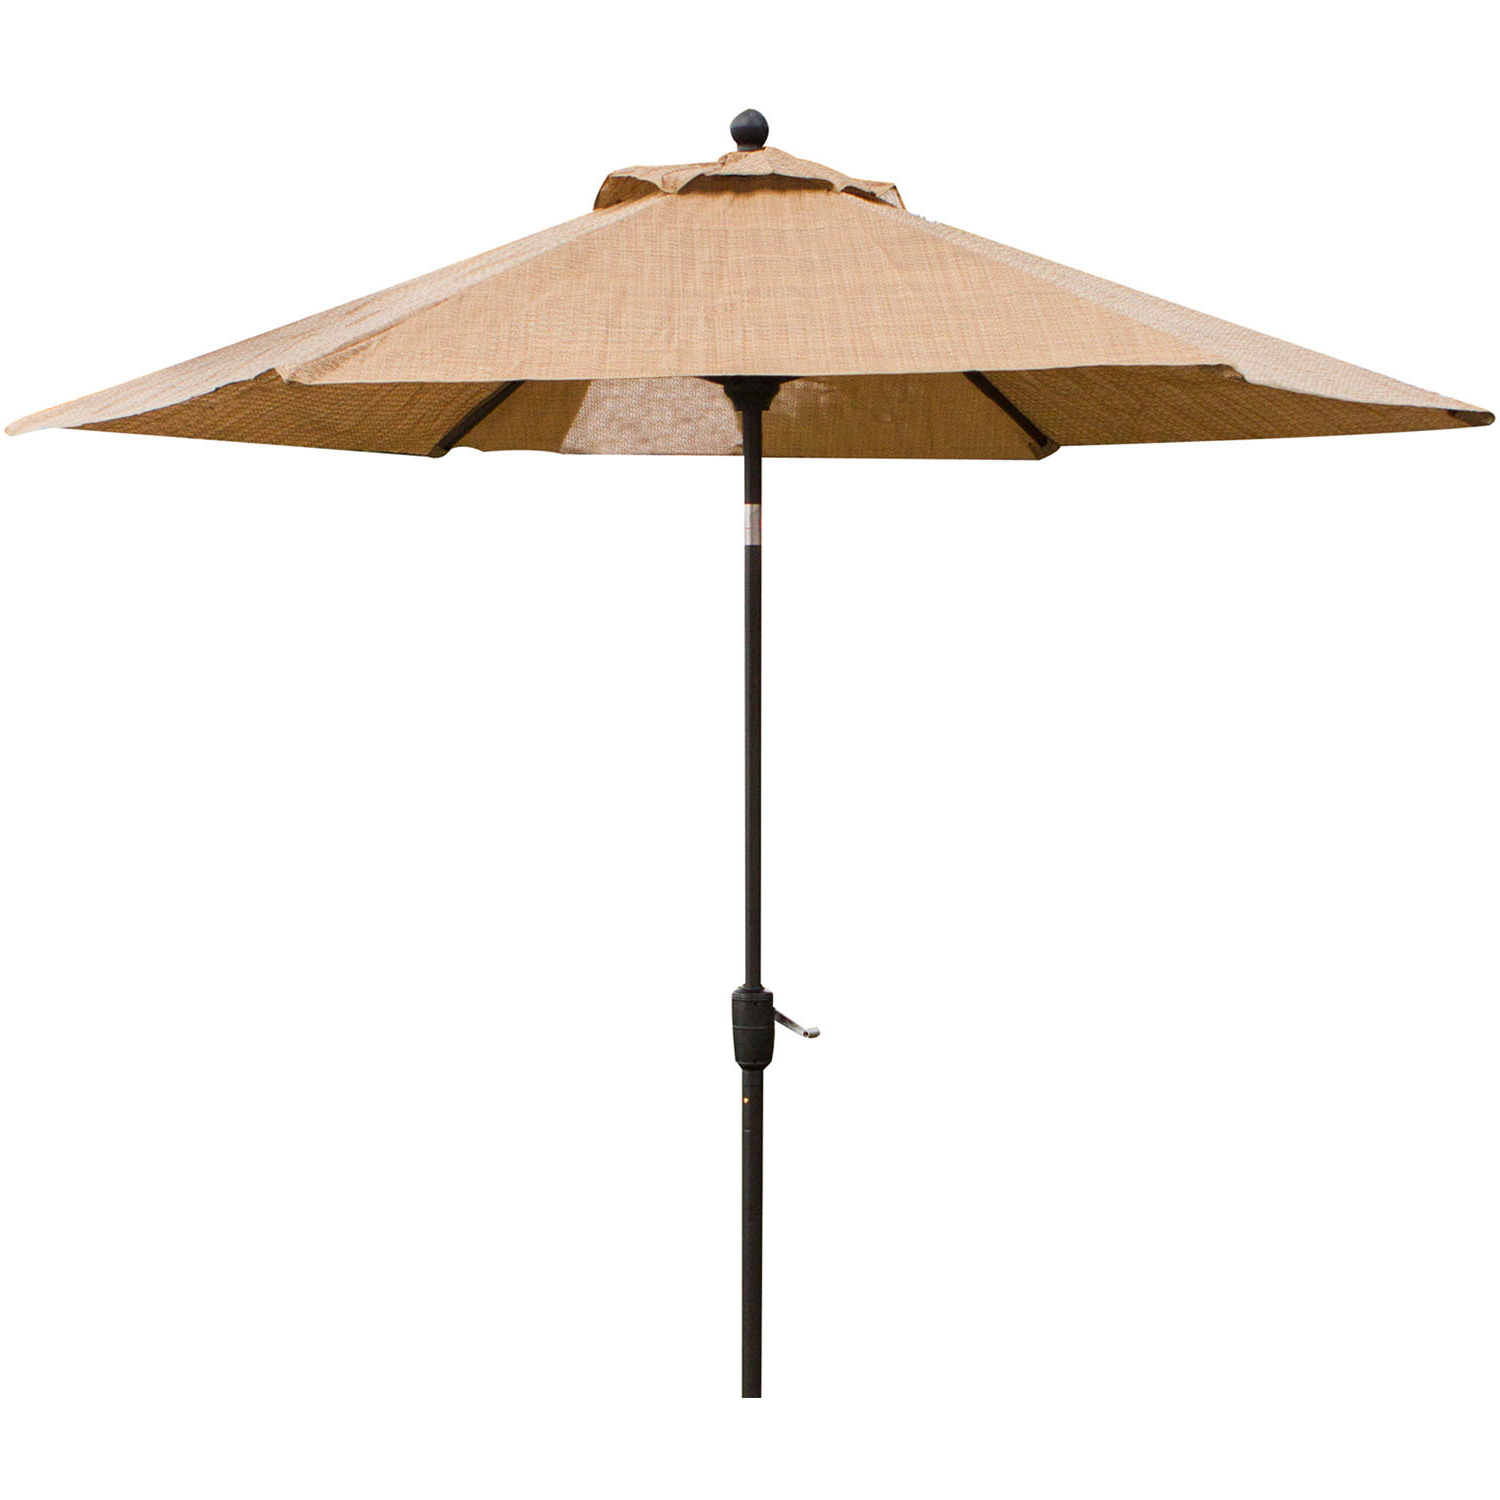 Most Recent Cardine Market Umbrellas For Stiefel 9' Market Umbrella (View 14 of 20)